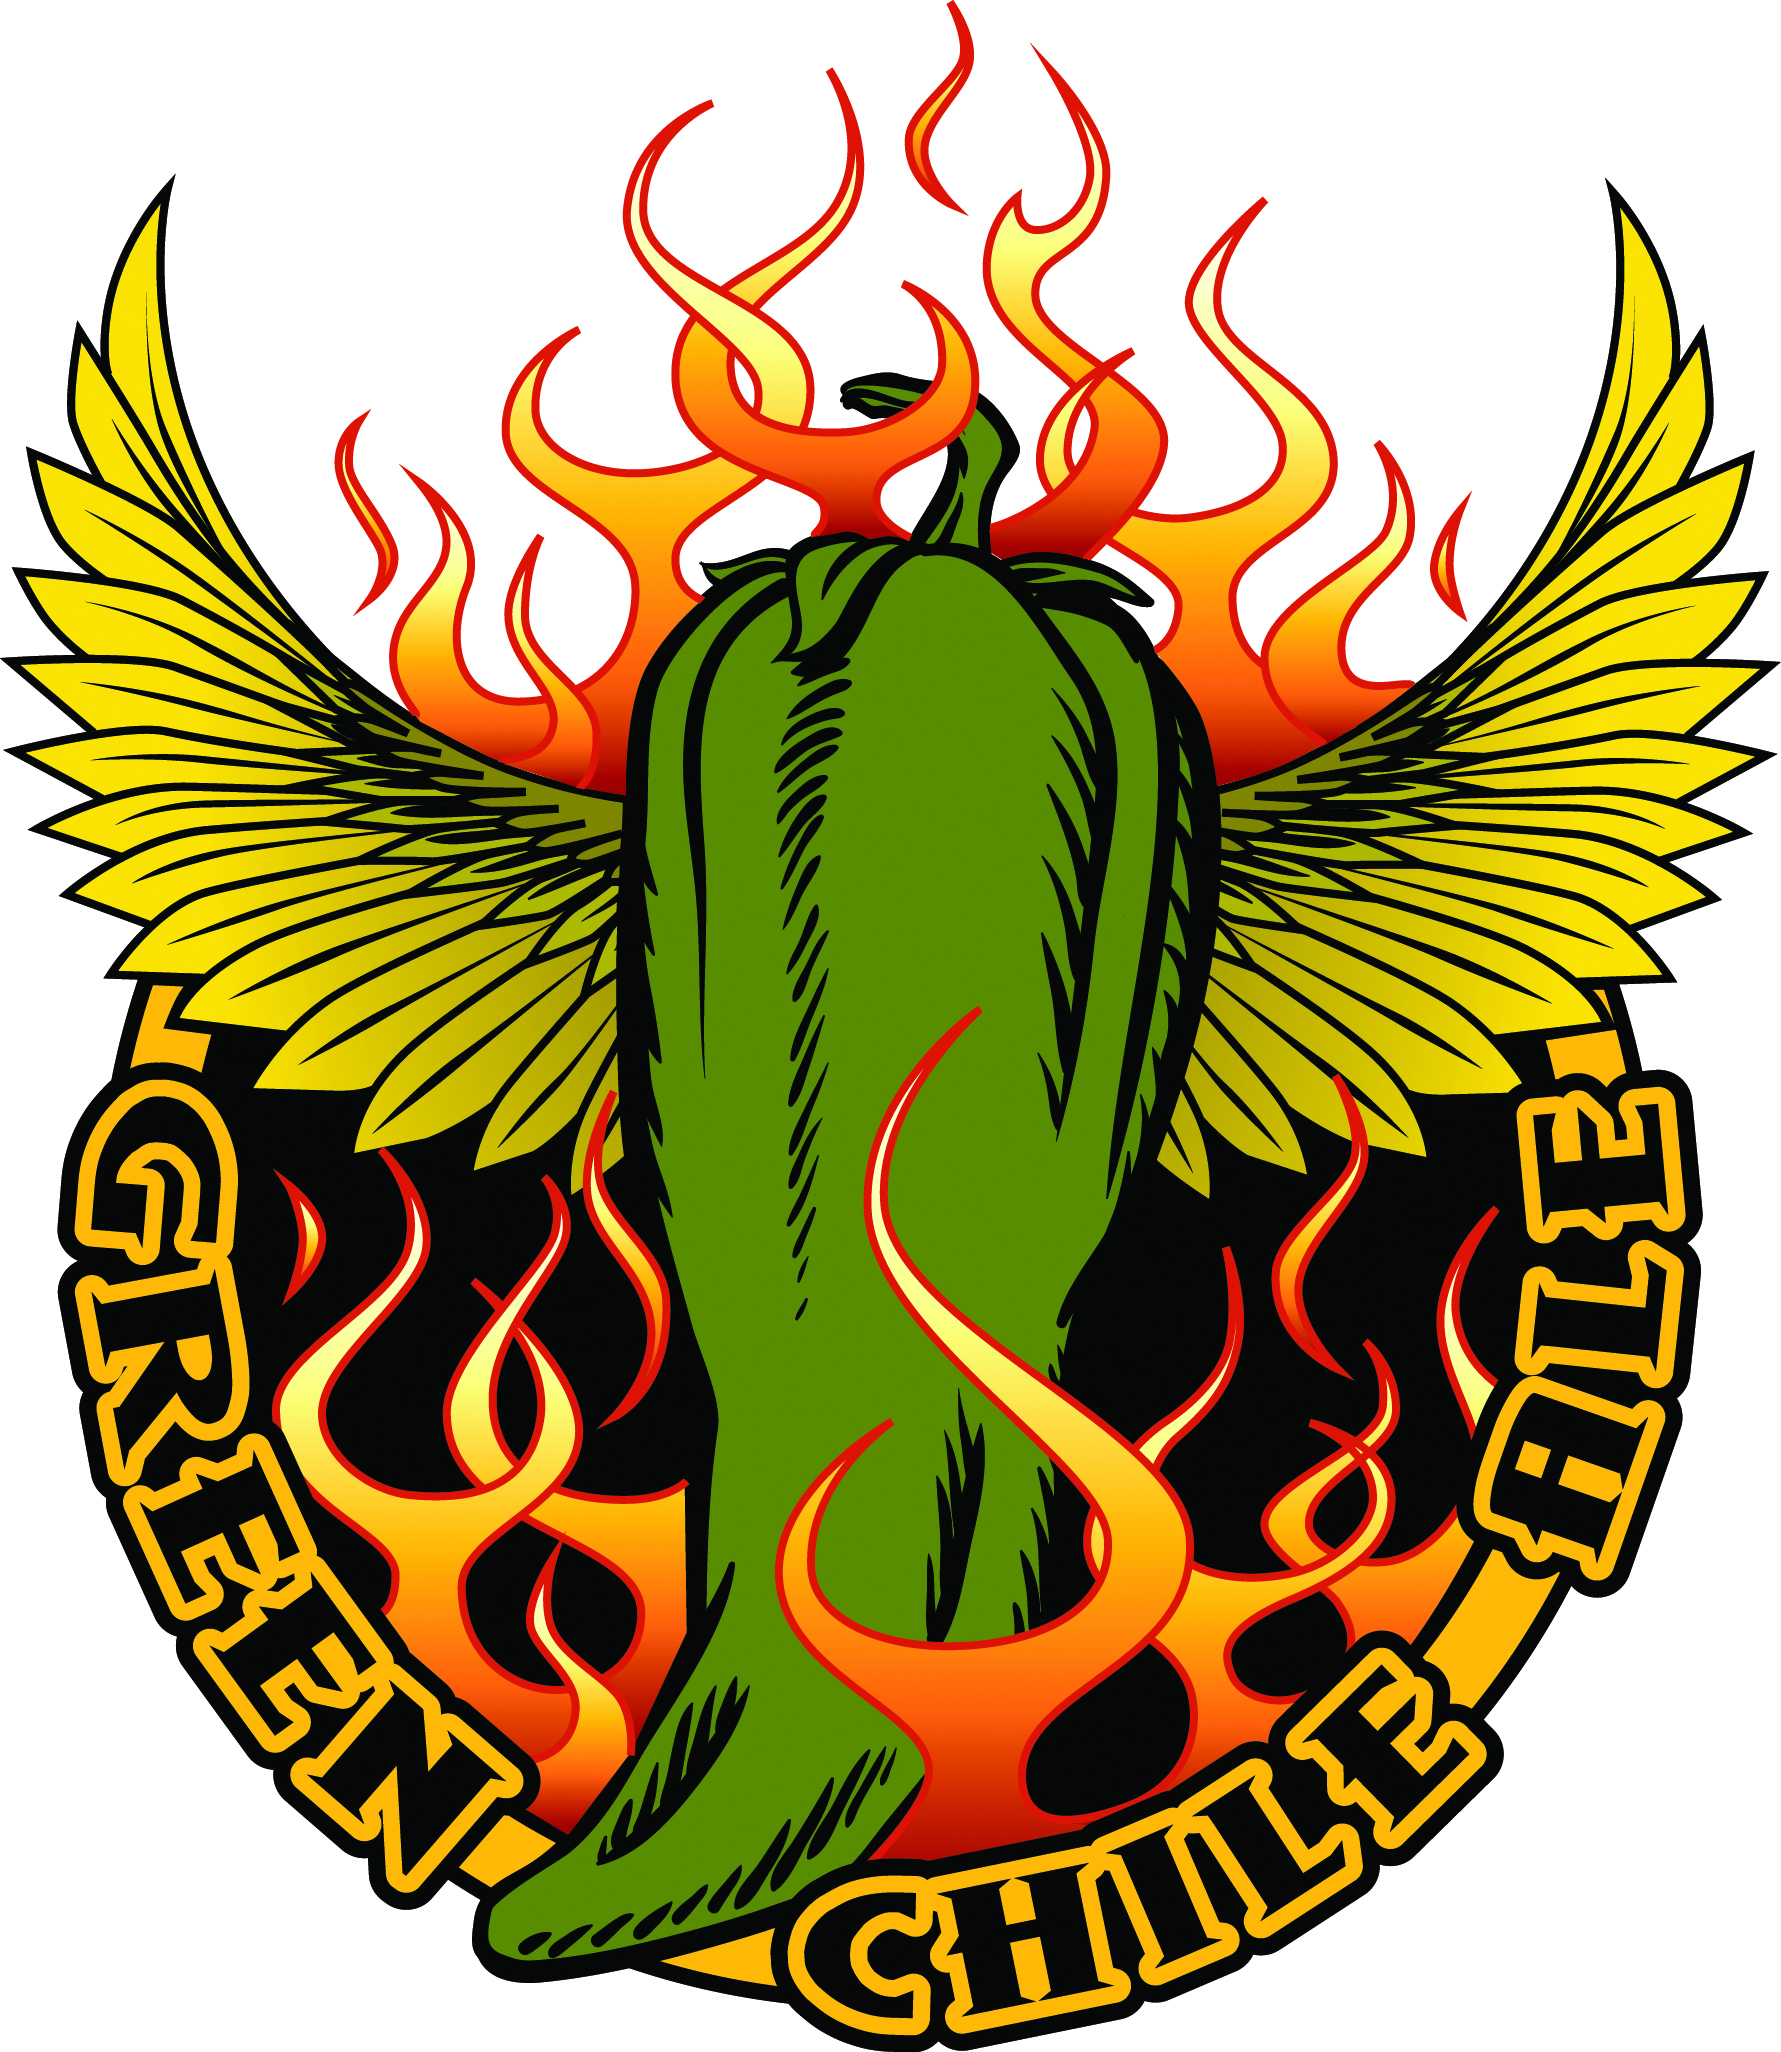 Soulcraft_Brewing_Green_Chile.jpg